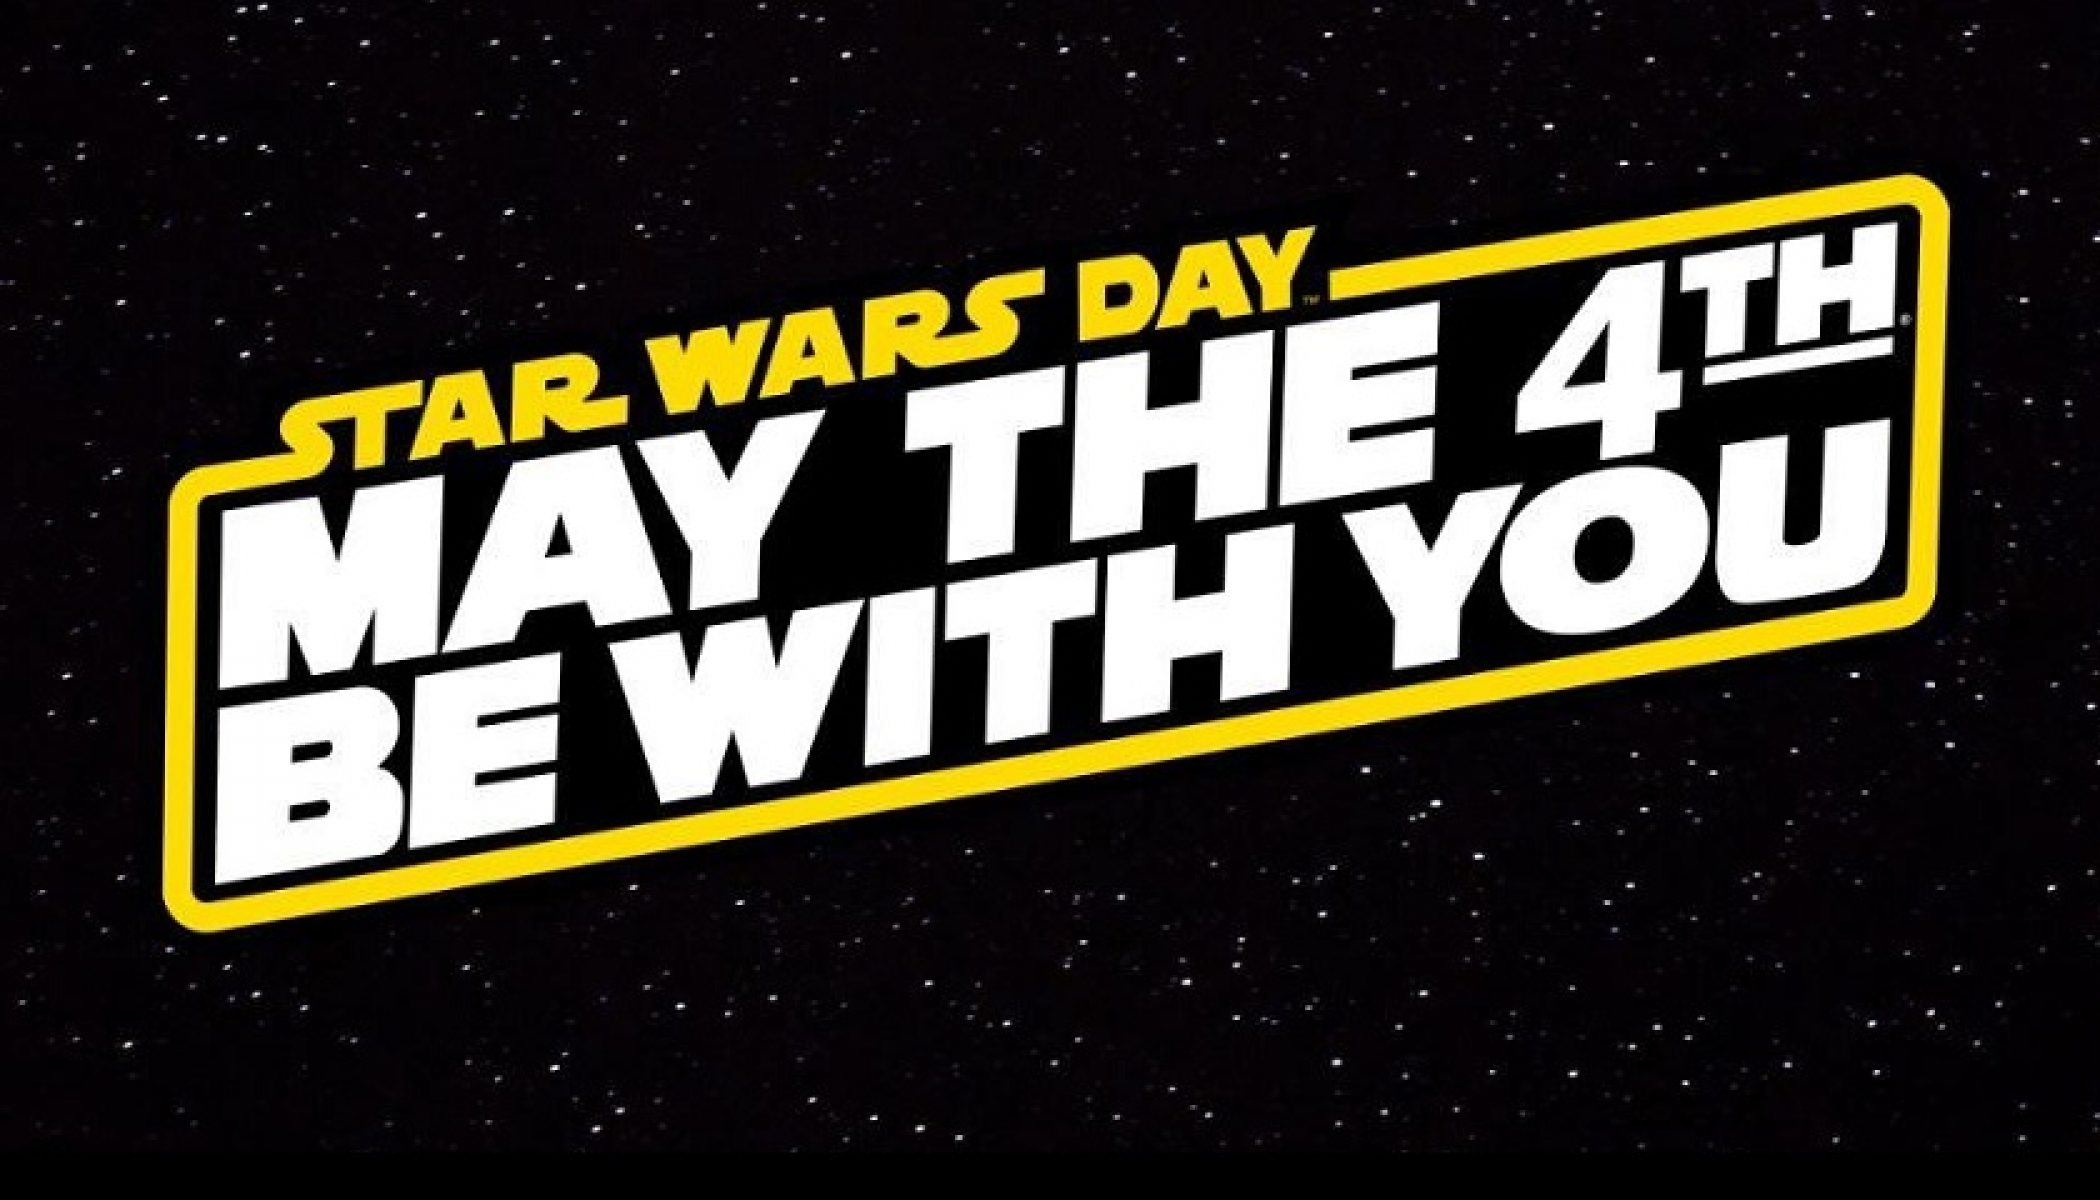 May The 4th Be With You: Se celebrará en línea con muchas sorpresas